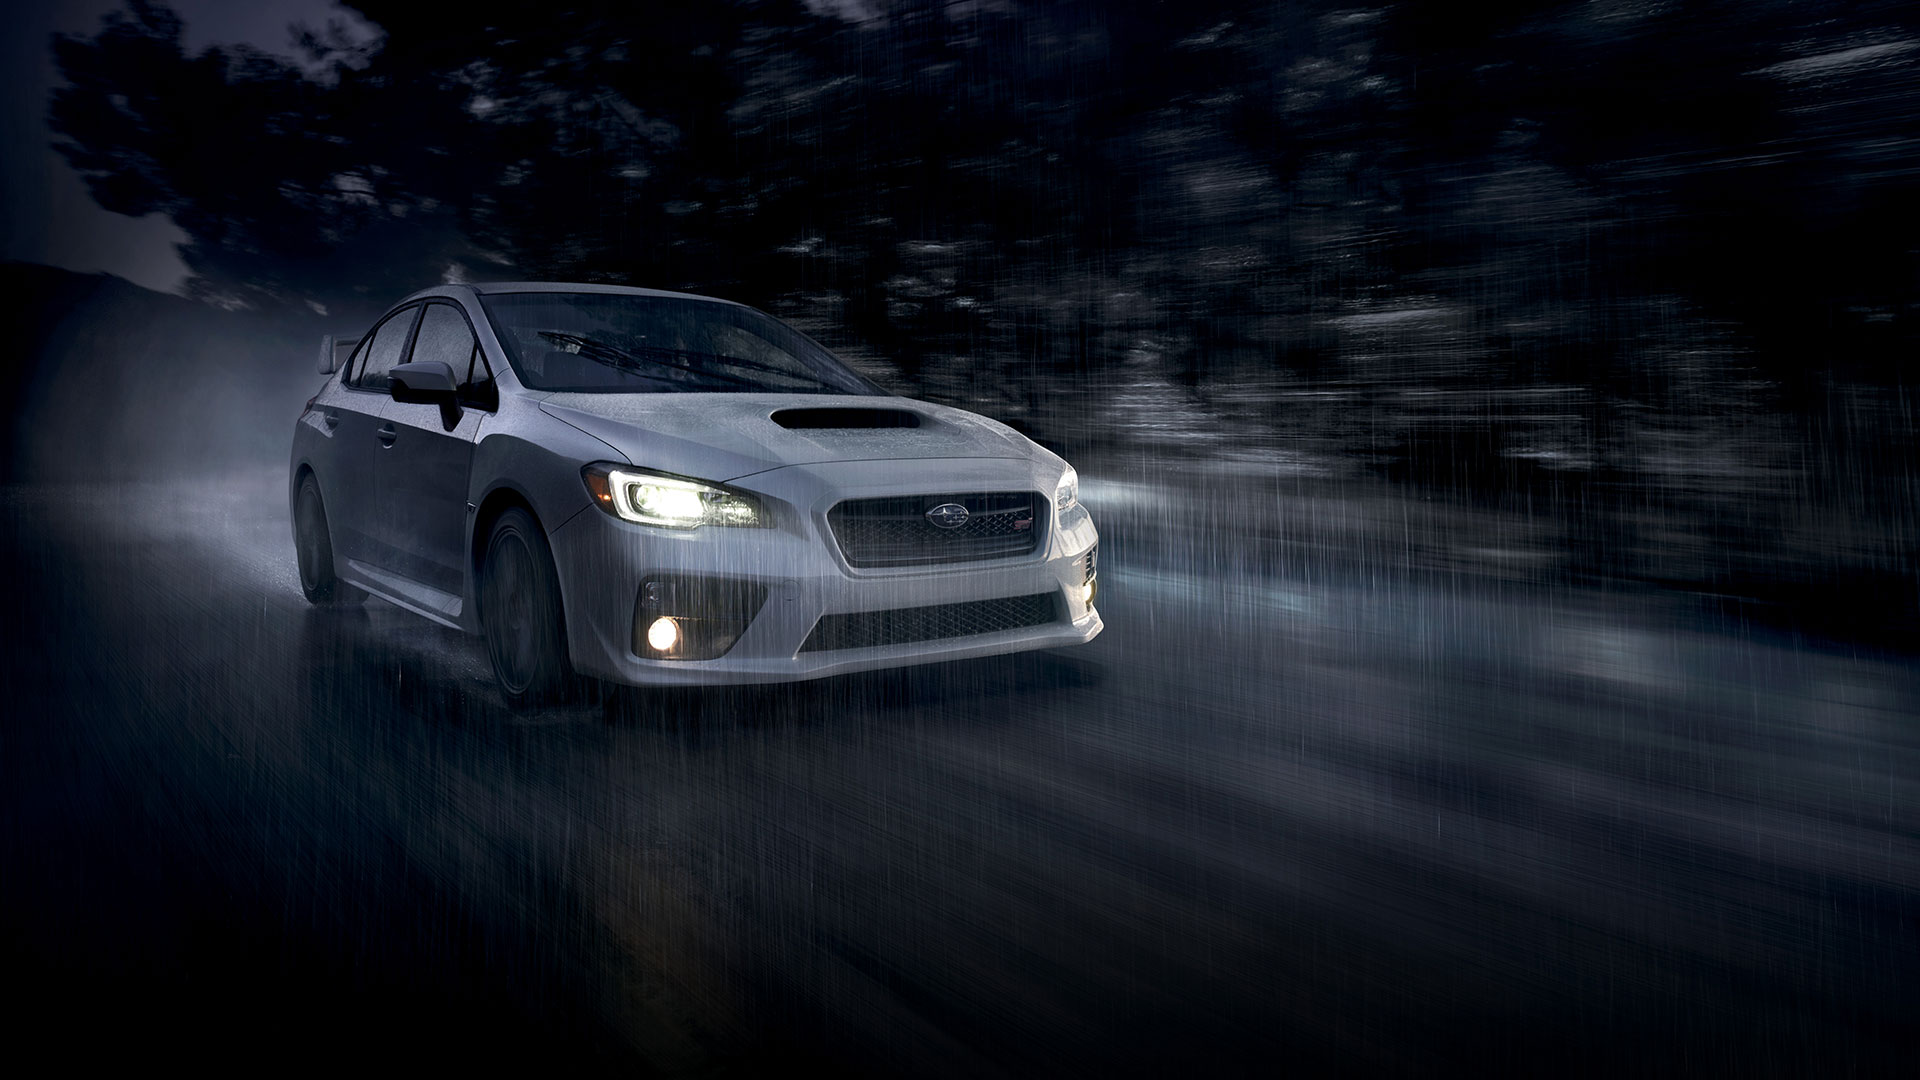 Cool Quote Wallpapers Hd 1920x1080 2016 Sti Order Officially Placed Page 5 Subaru Impreza